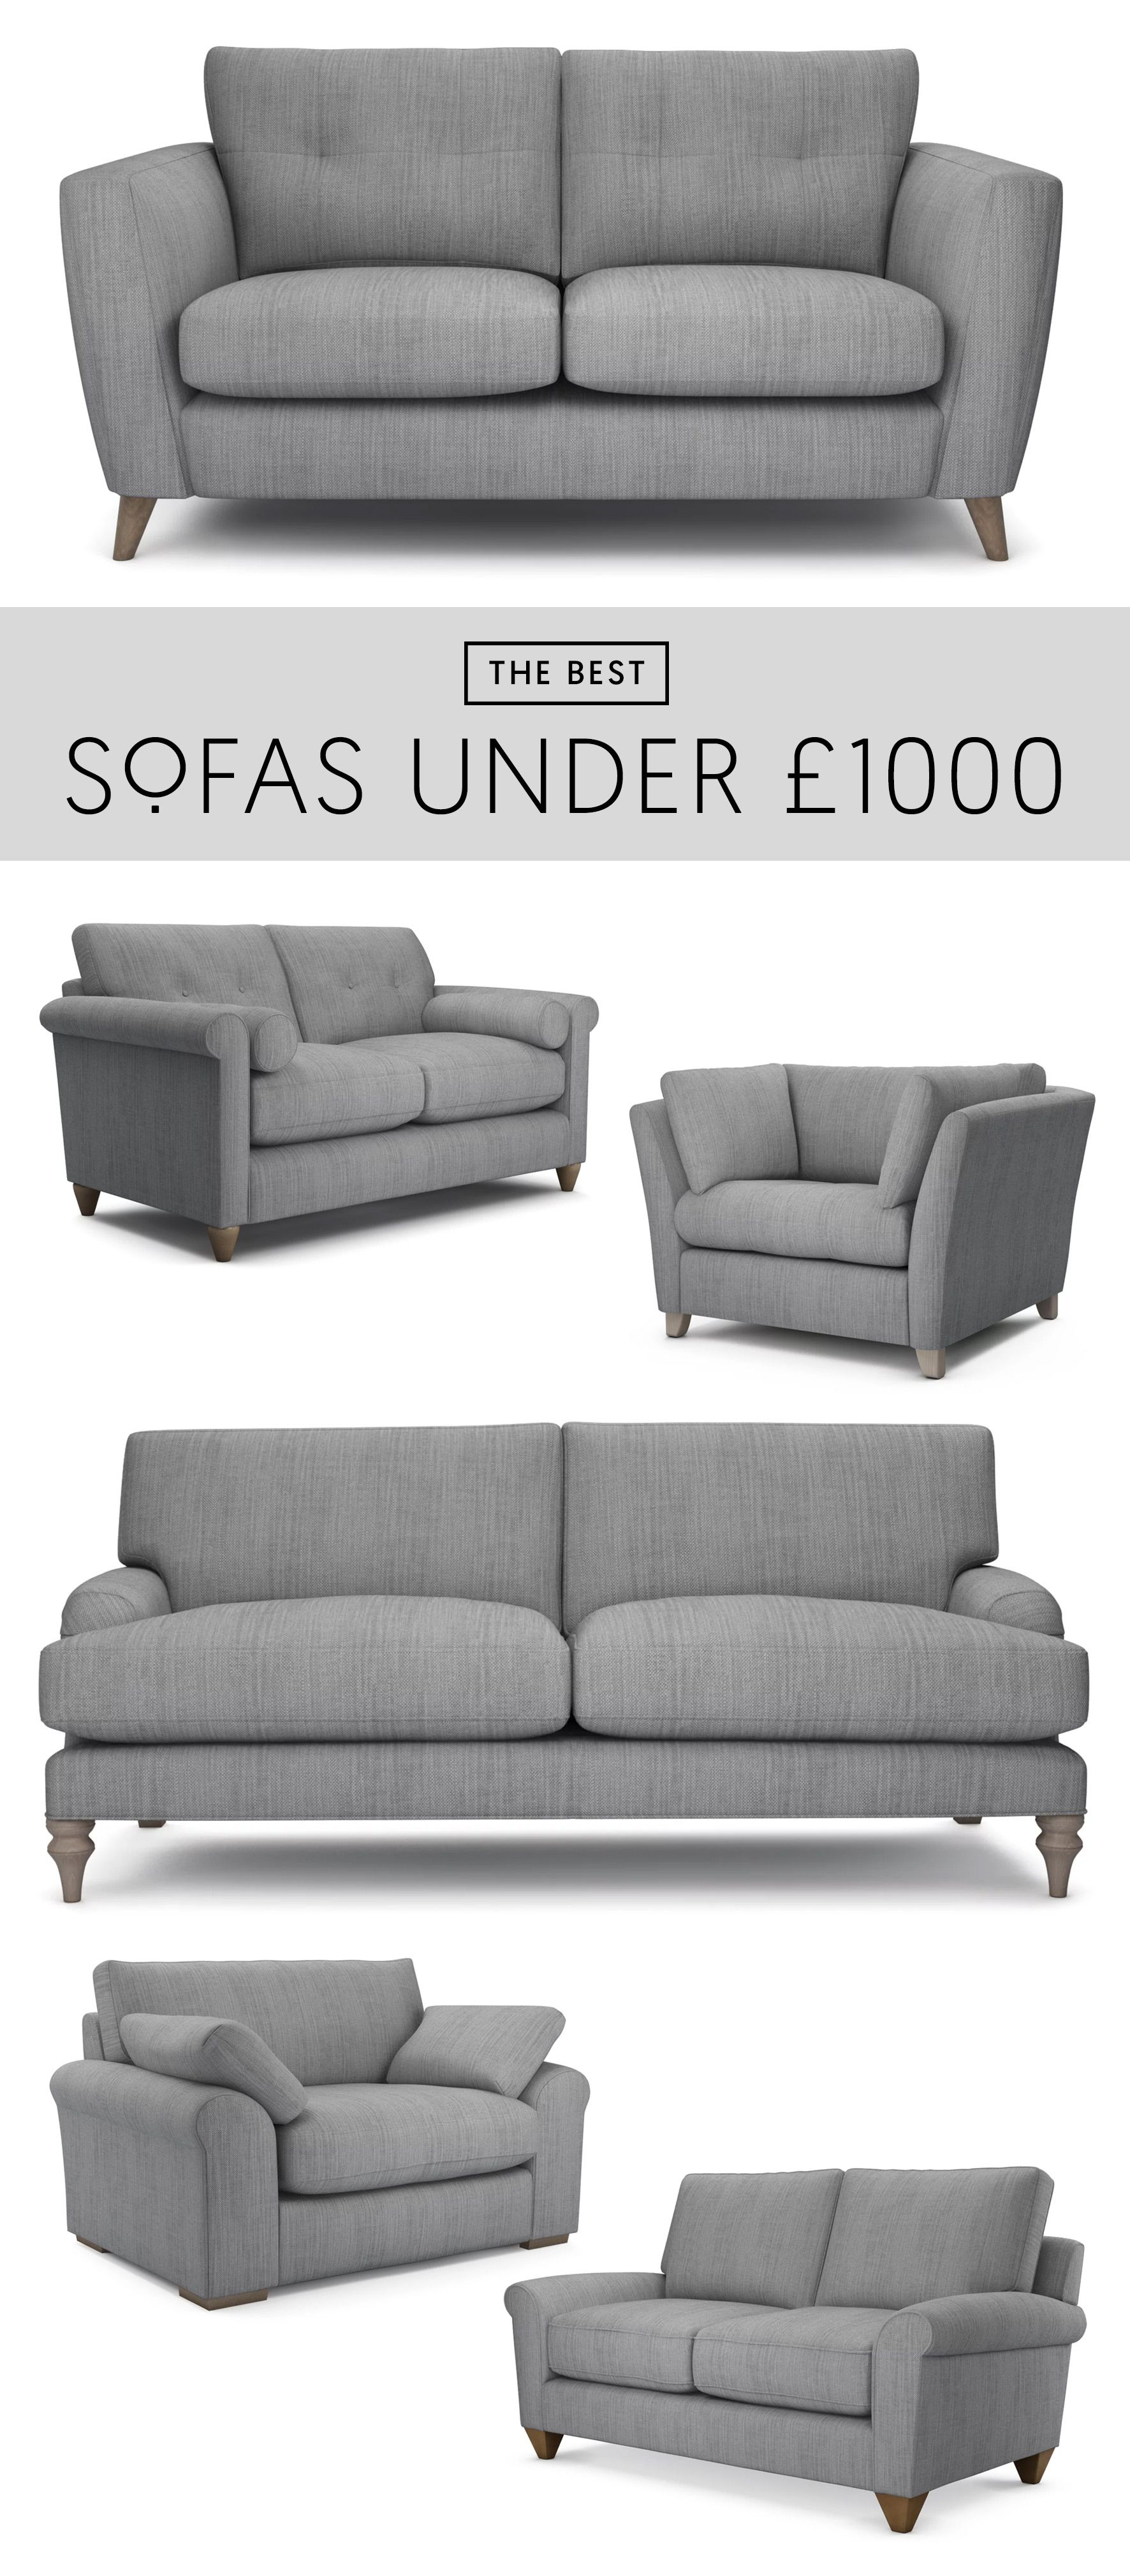 The Best 6 Sofas Under £1000 | Stylish, British-Made Sofas. Quality ...